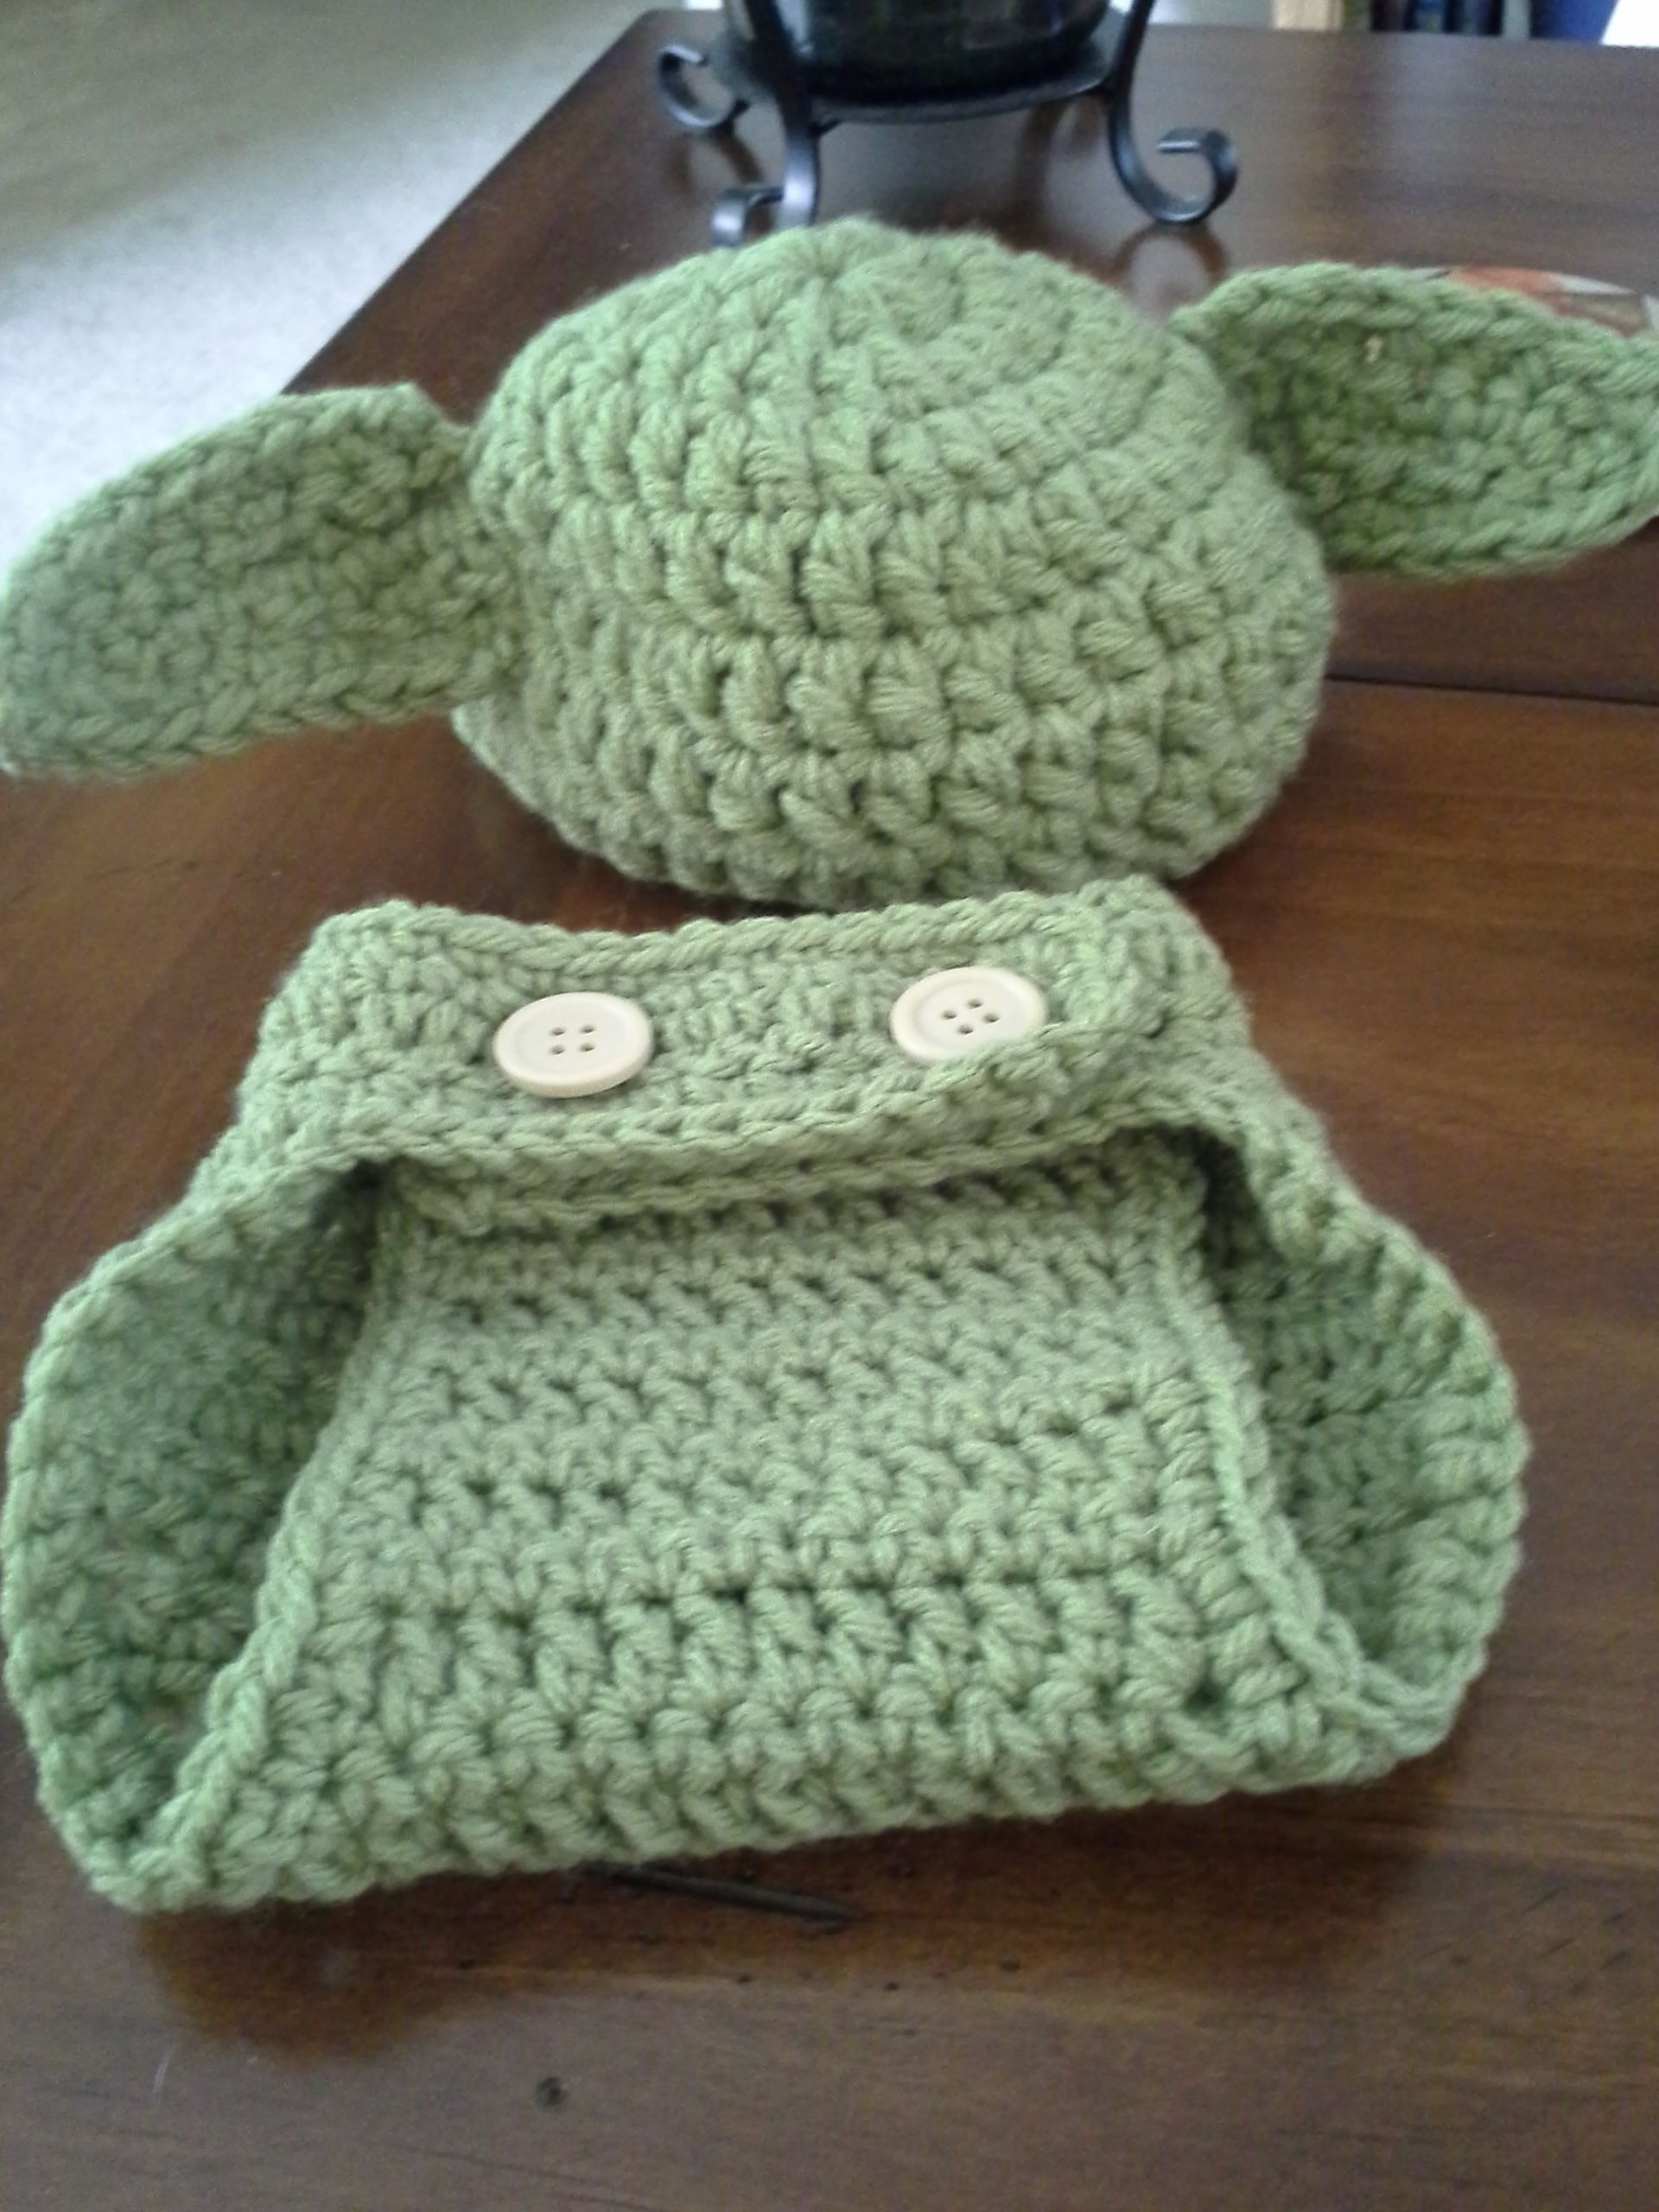 Baby Yoda Hat With Matching Diaper Cover For My Little Nephew On The